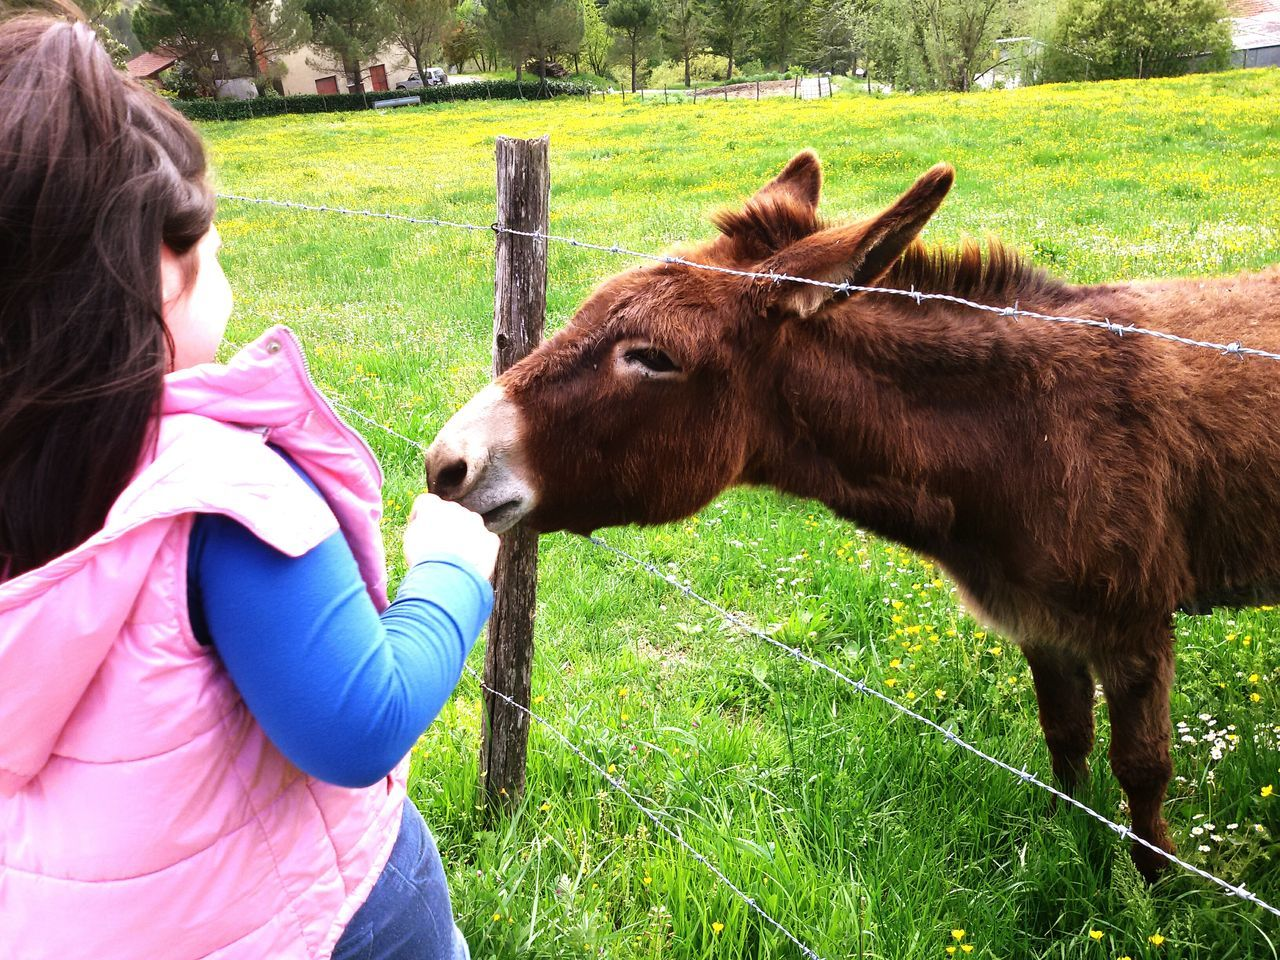 Rear View Of Girl Standing By Donkey At Farm